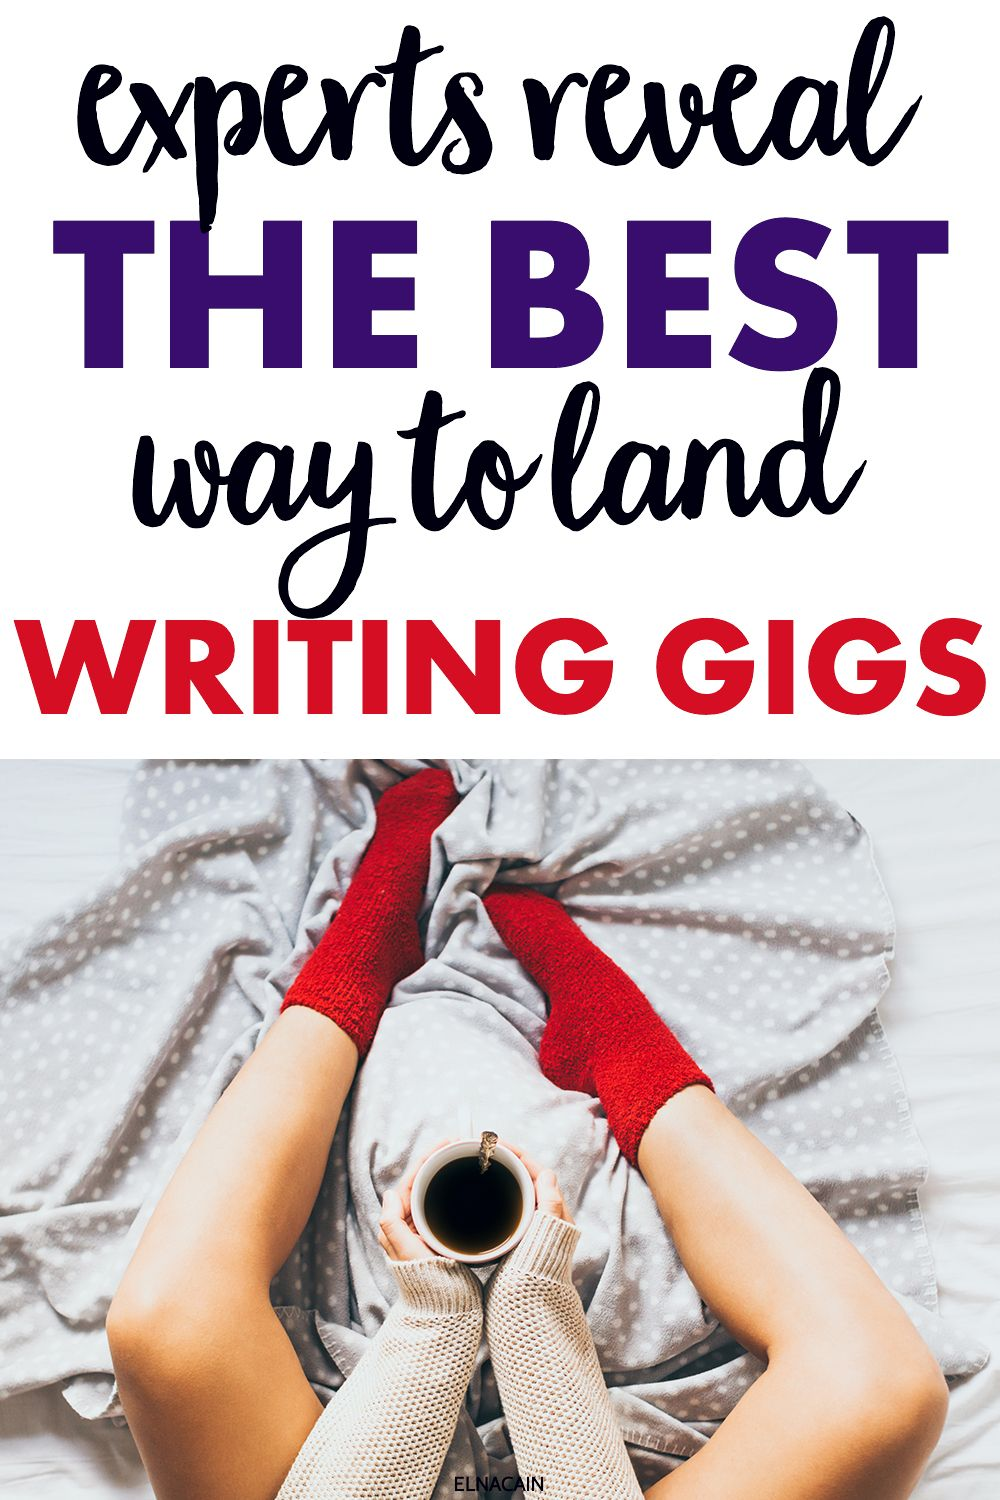 12 Freelance Writing Experts Reveal Their Best Way To Land Gigs In 2020 Freelance Writing Online Writing Jobs Writing Jobs